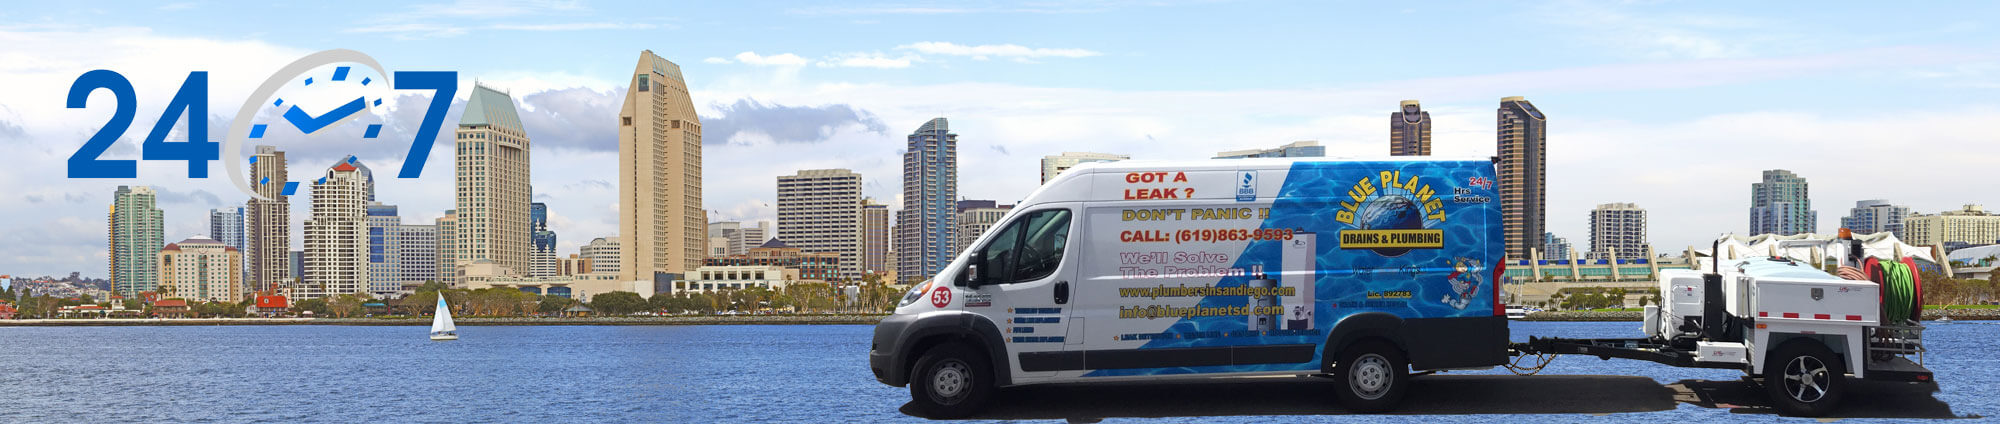 Hydrojetting Services San Diego, California